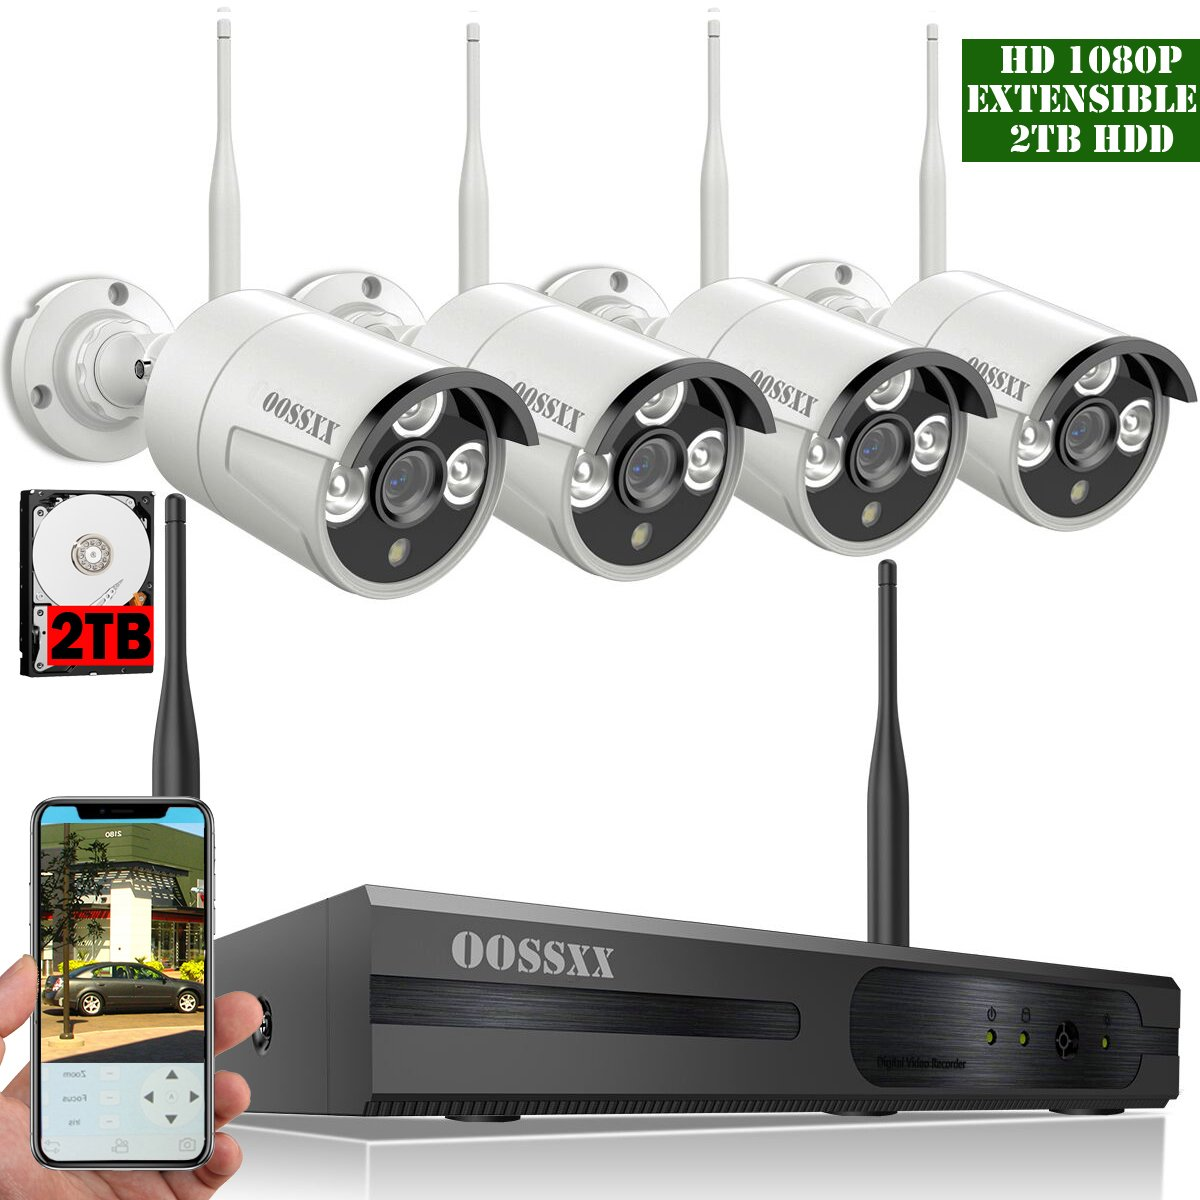 OOSSXX 8-Channel HD 1080P Wireless Network/IP Security Camera System(IP Wireless WIFI NVR Kits),4Pcs 1080P 2.0 Megapixel Wireless Indoor/Outdoor IR Bullet IP Cameras,P2P,App, HDMI Cord & 2TB HDD